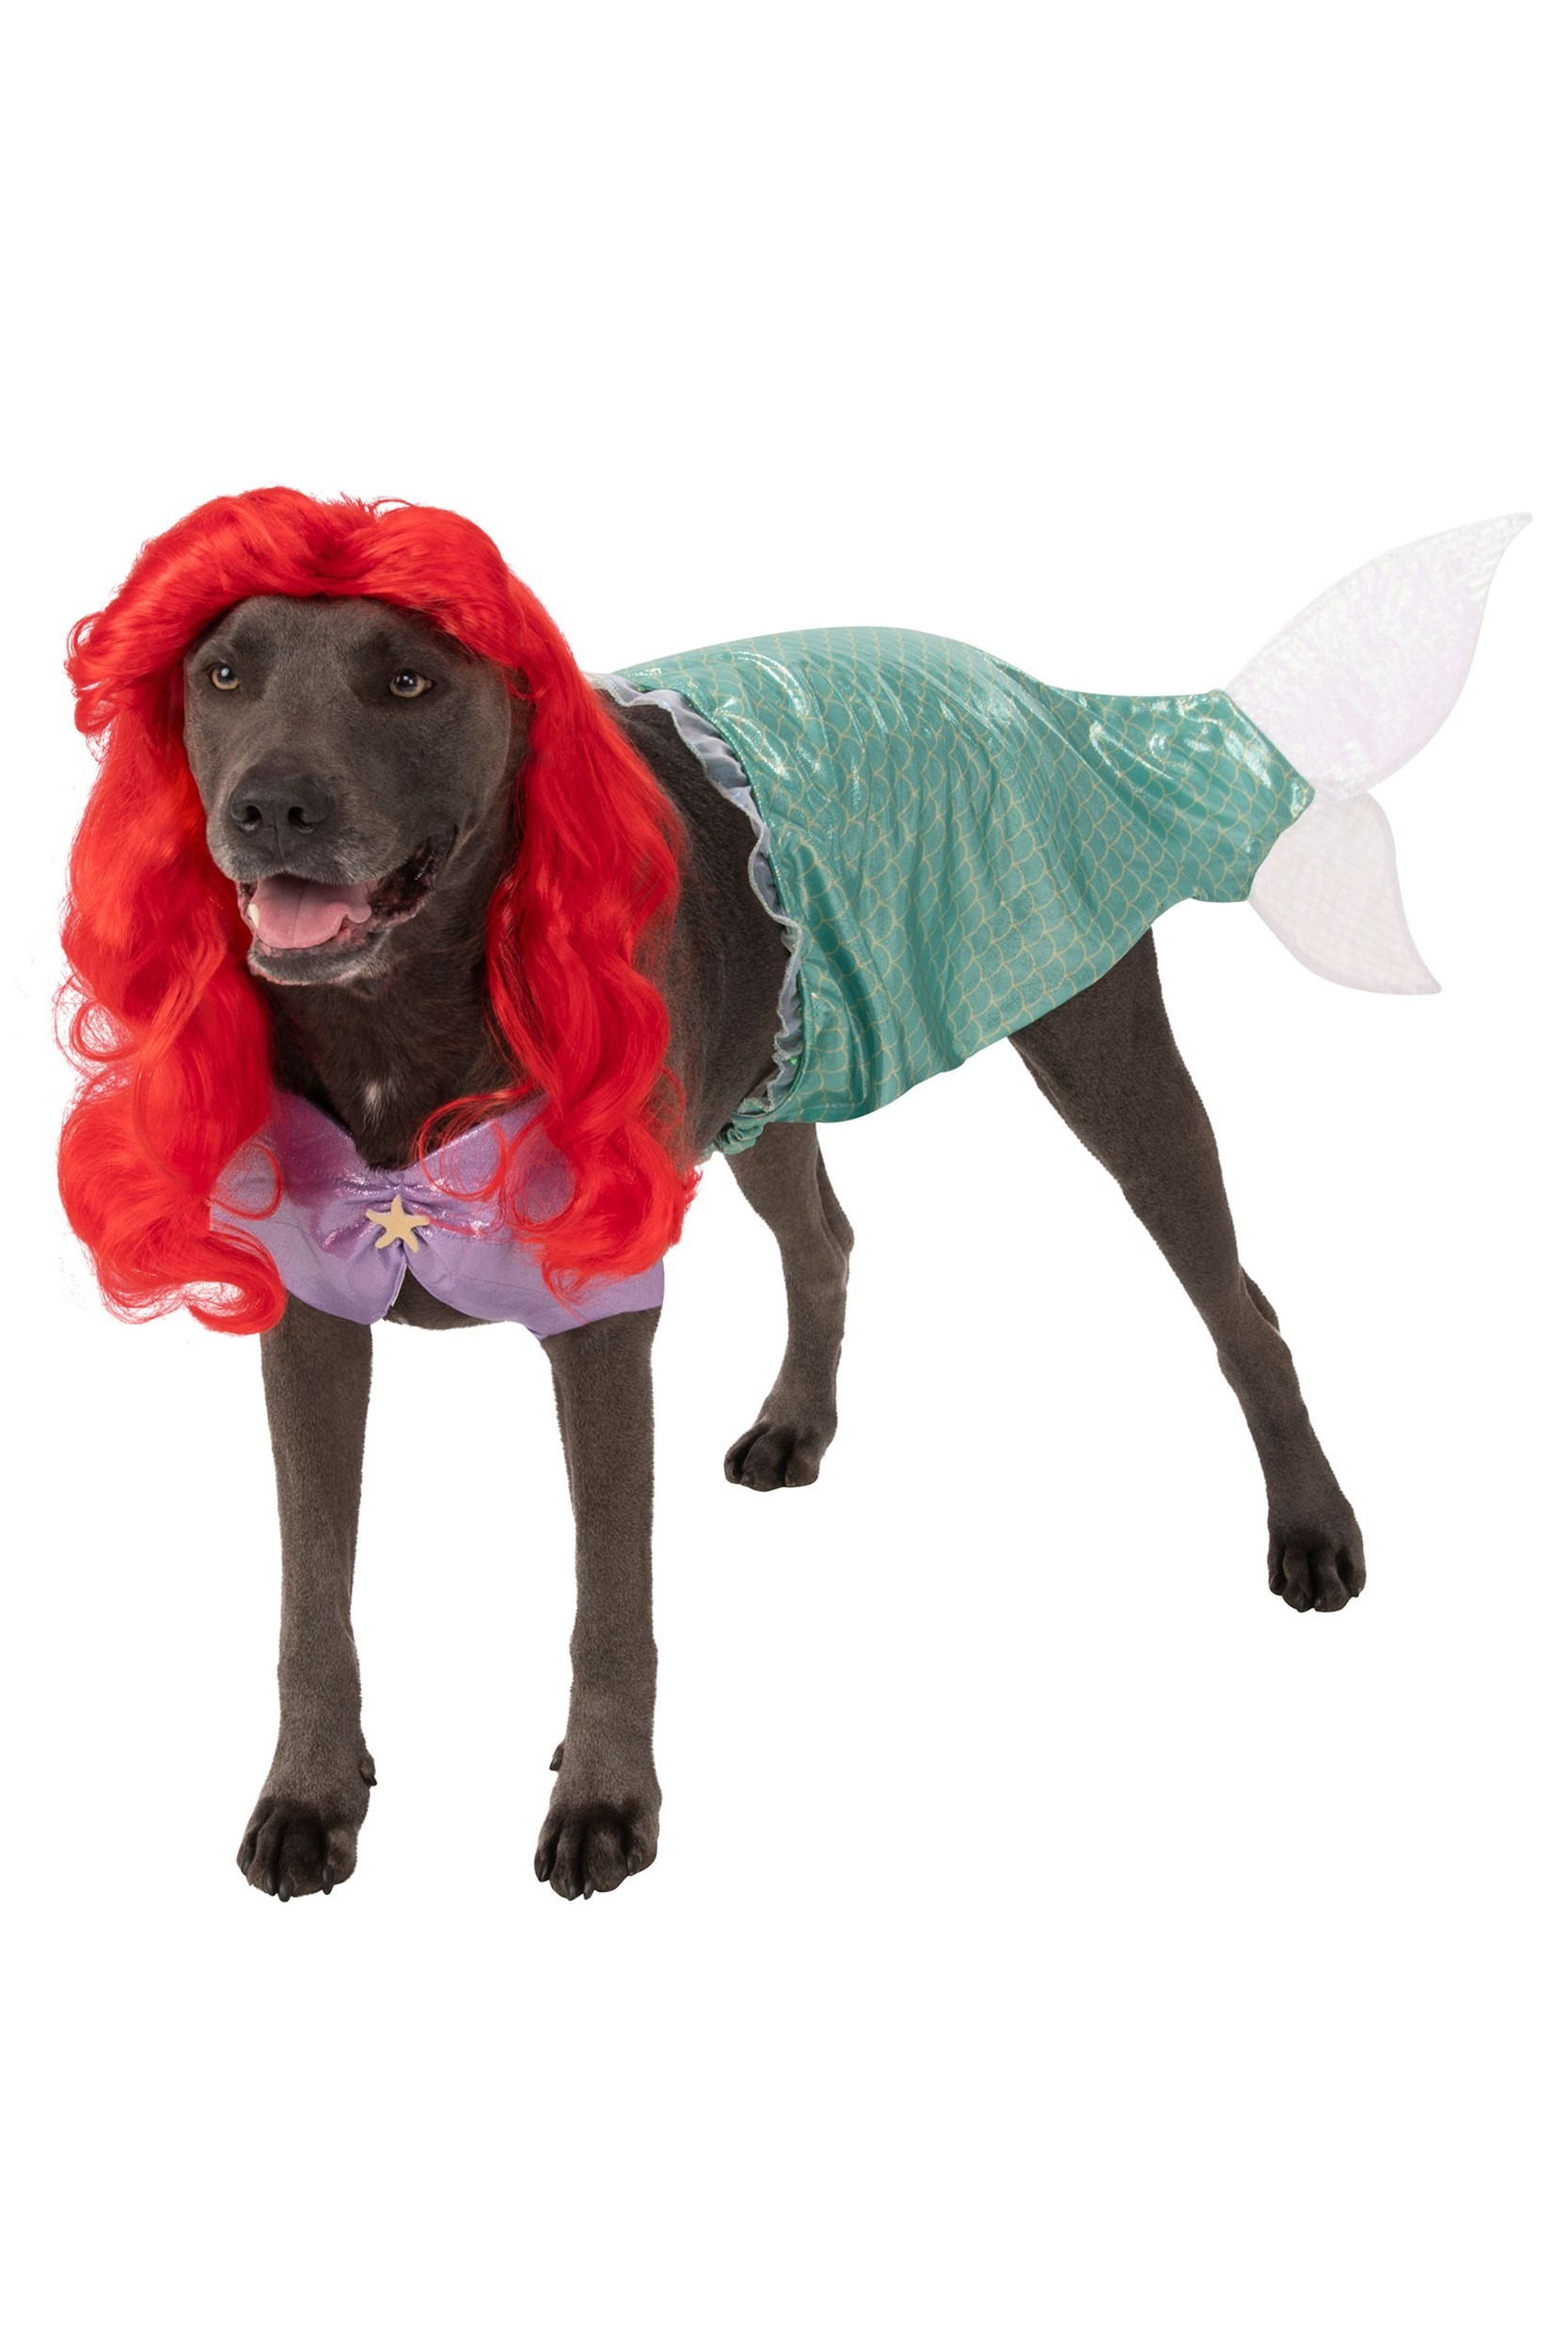 Plus Size - The Little Mermaid Ariel Dog Costume